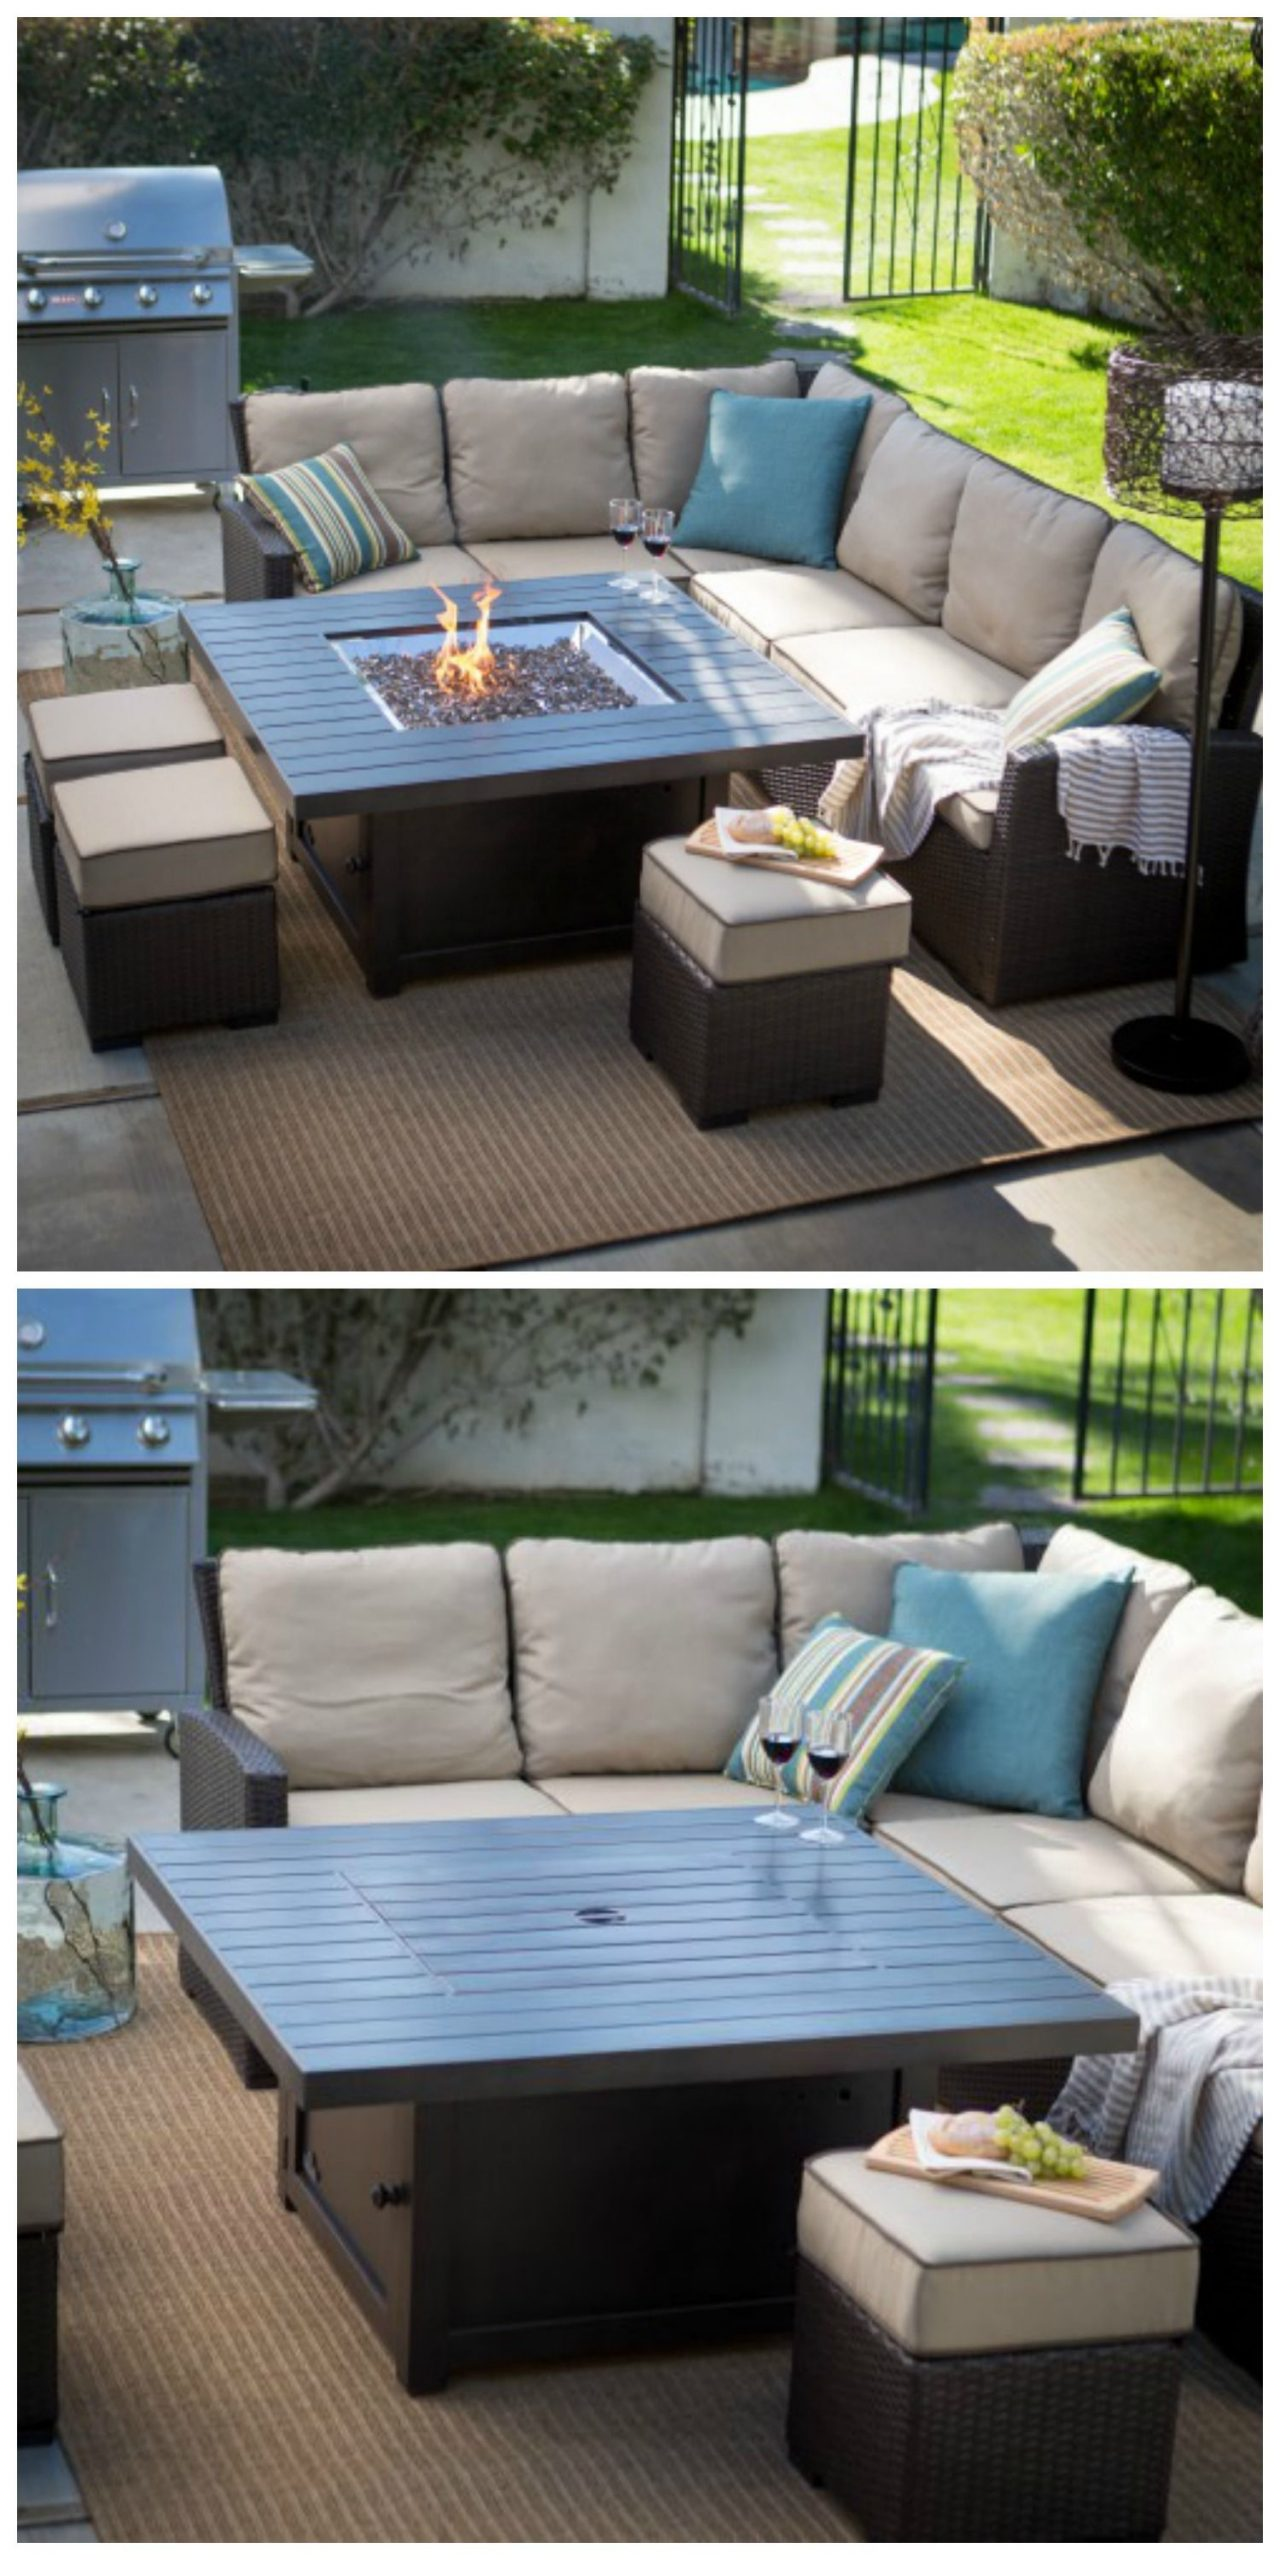 Could Go Well On The Loft Deck. The Table Is Pretty Cool ... pour But Salon Jardin